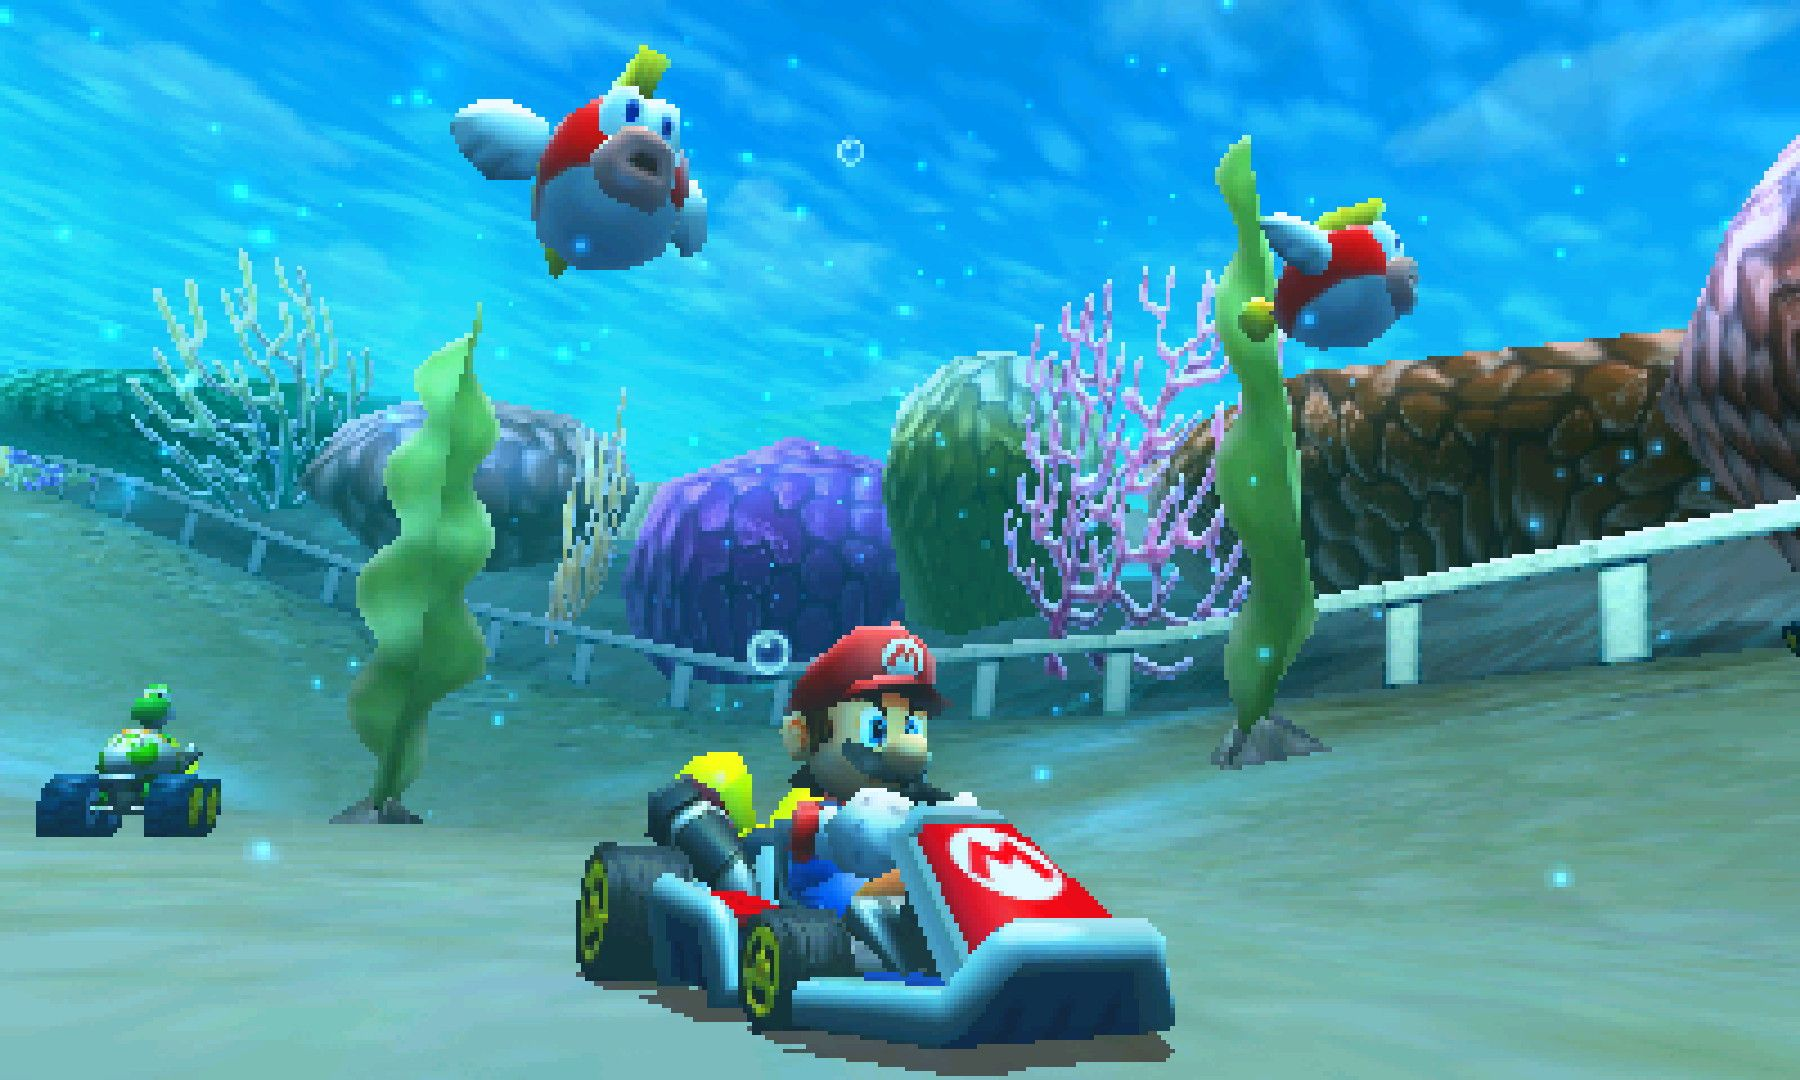 'Mario Kart' is dashing to your smartphone